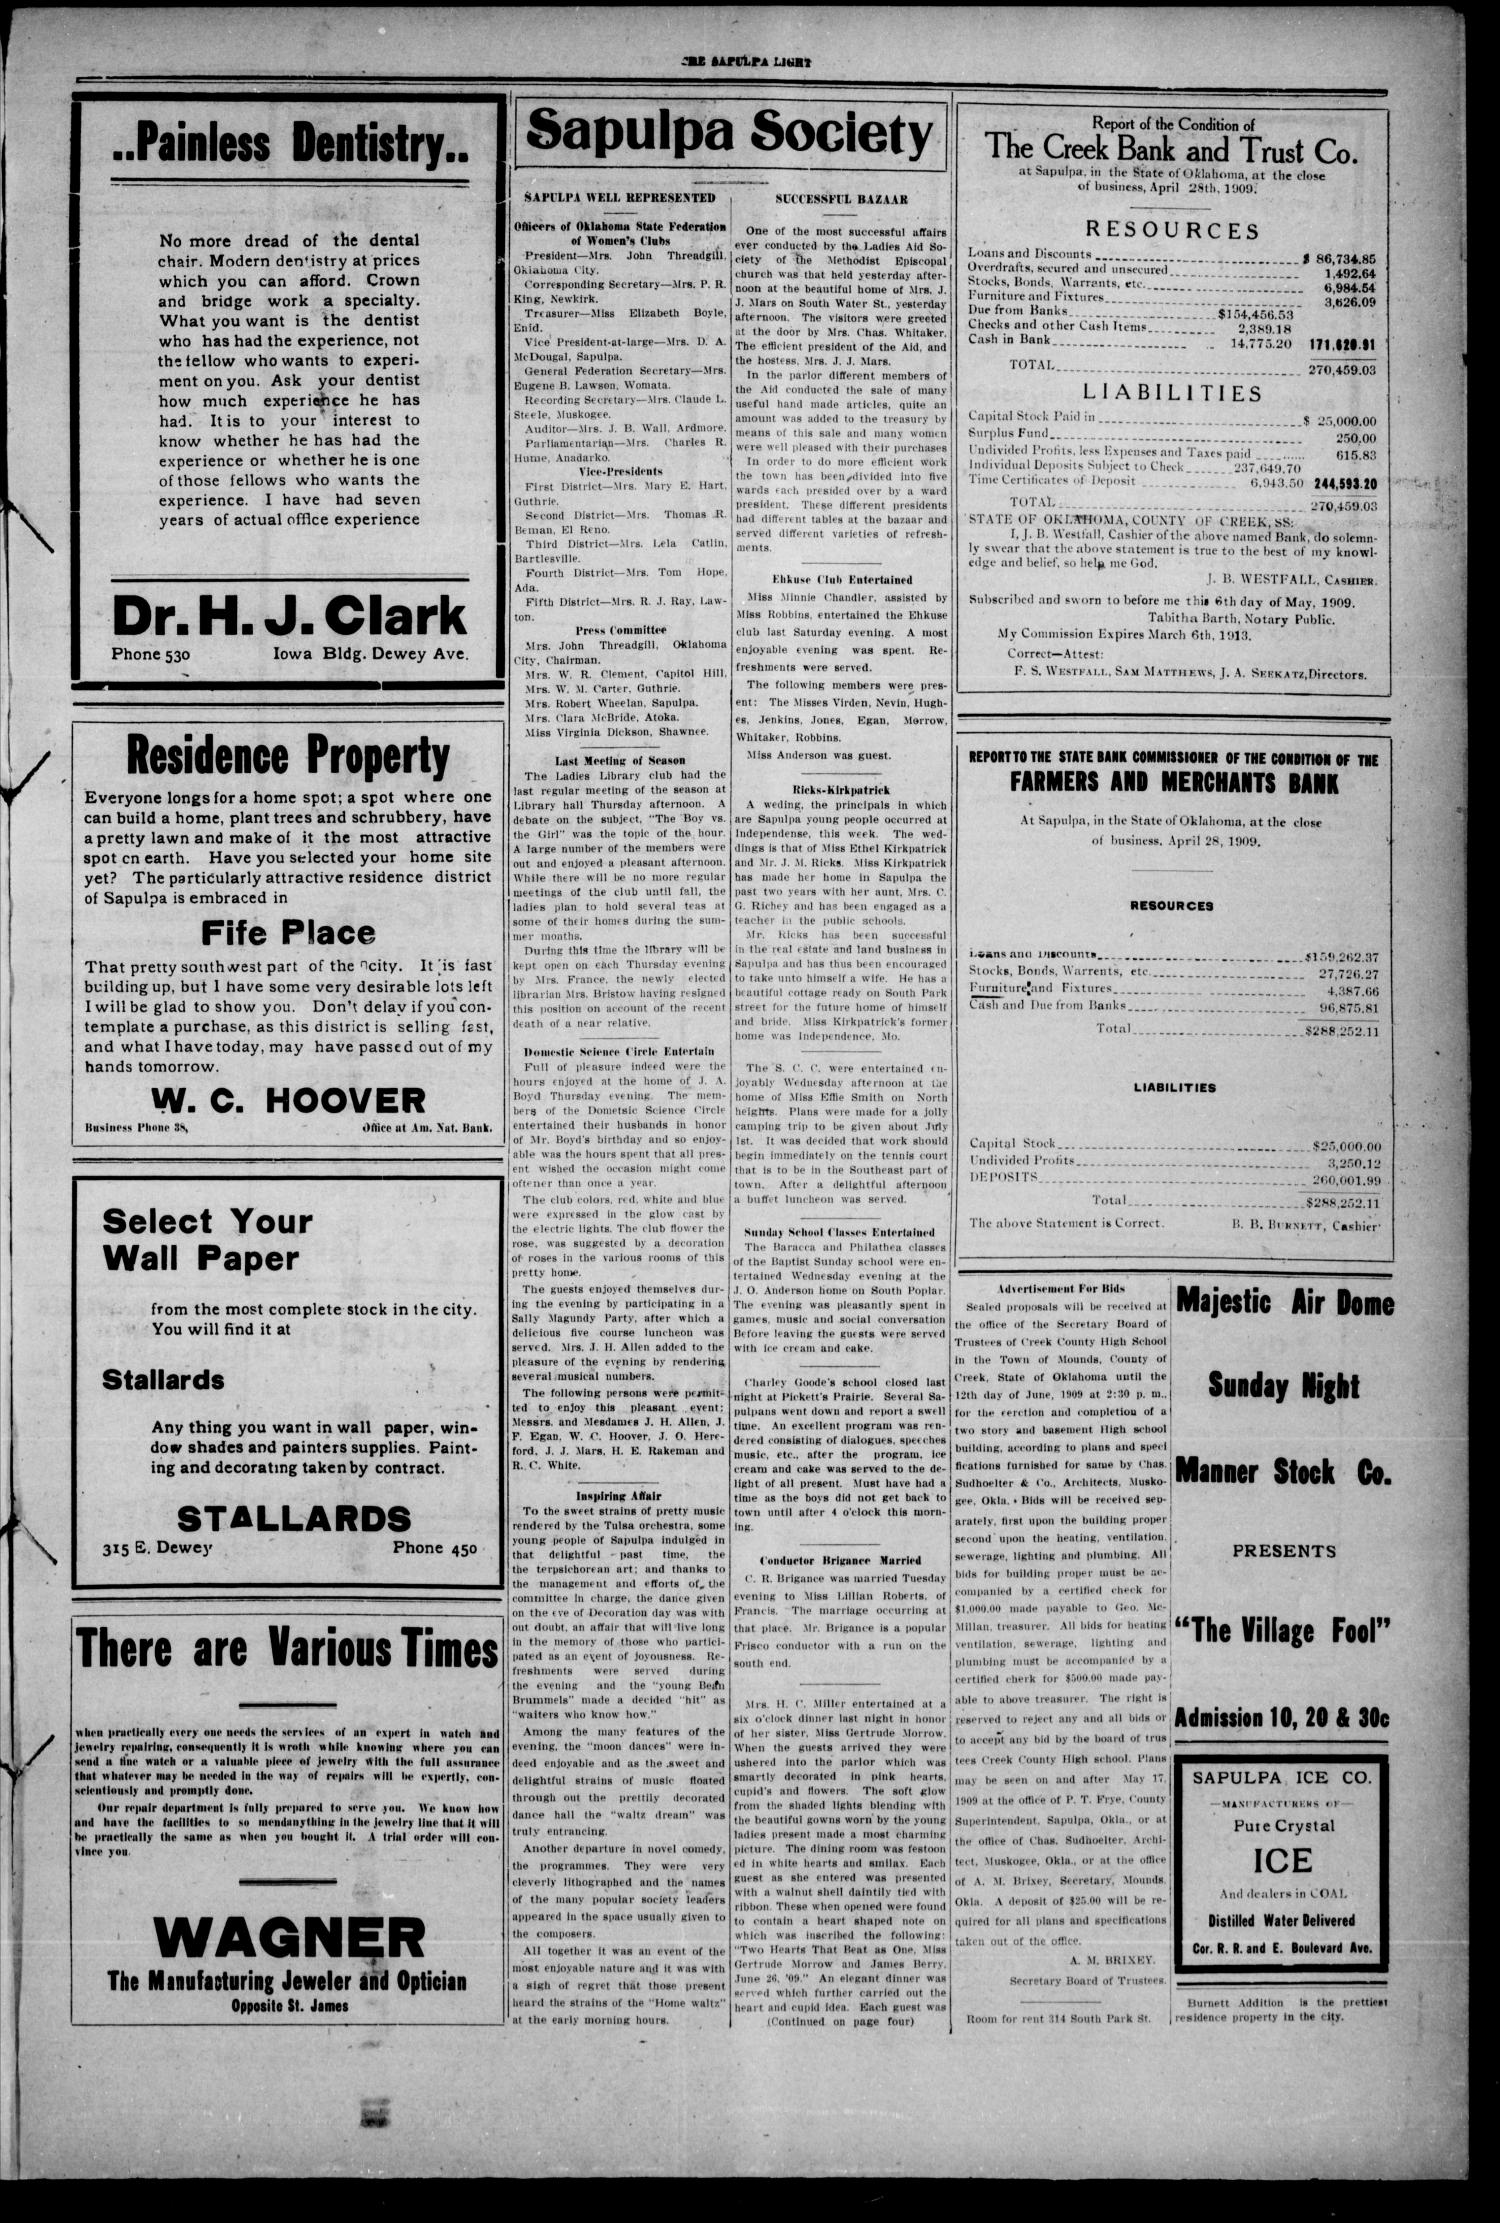 The Sapulpa Light. (Sapulpa, Okla.), Vol. 2, No. 184, Ed. 1 Saturday, May 29, 1909                                                                                                      [Sequence #]: 3 of 4